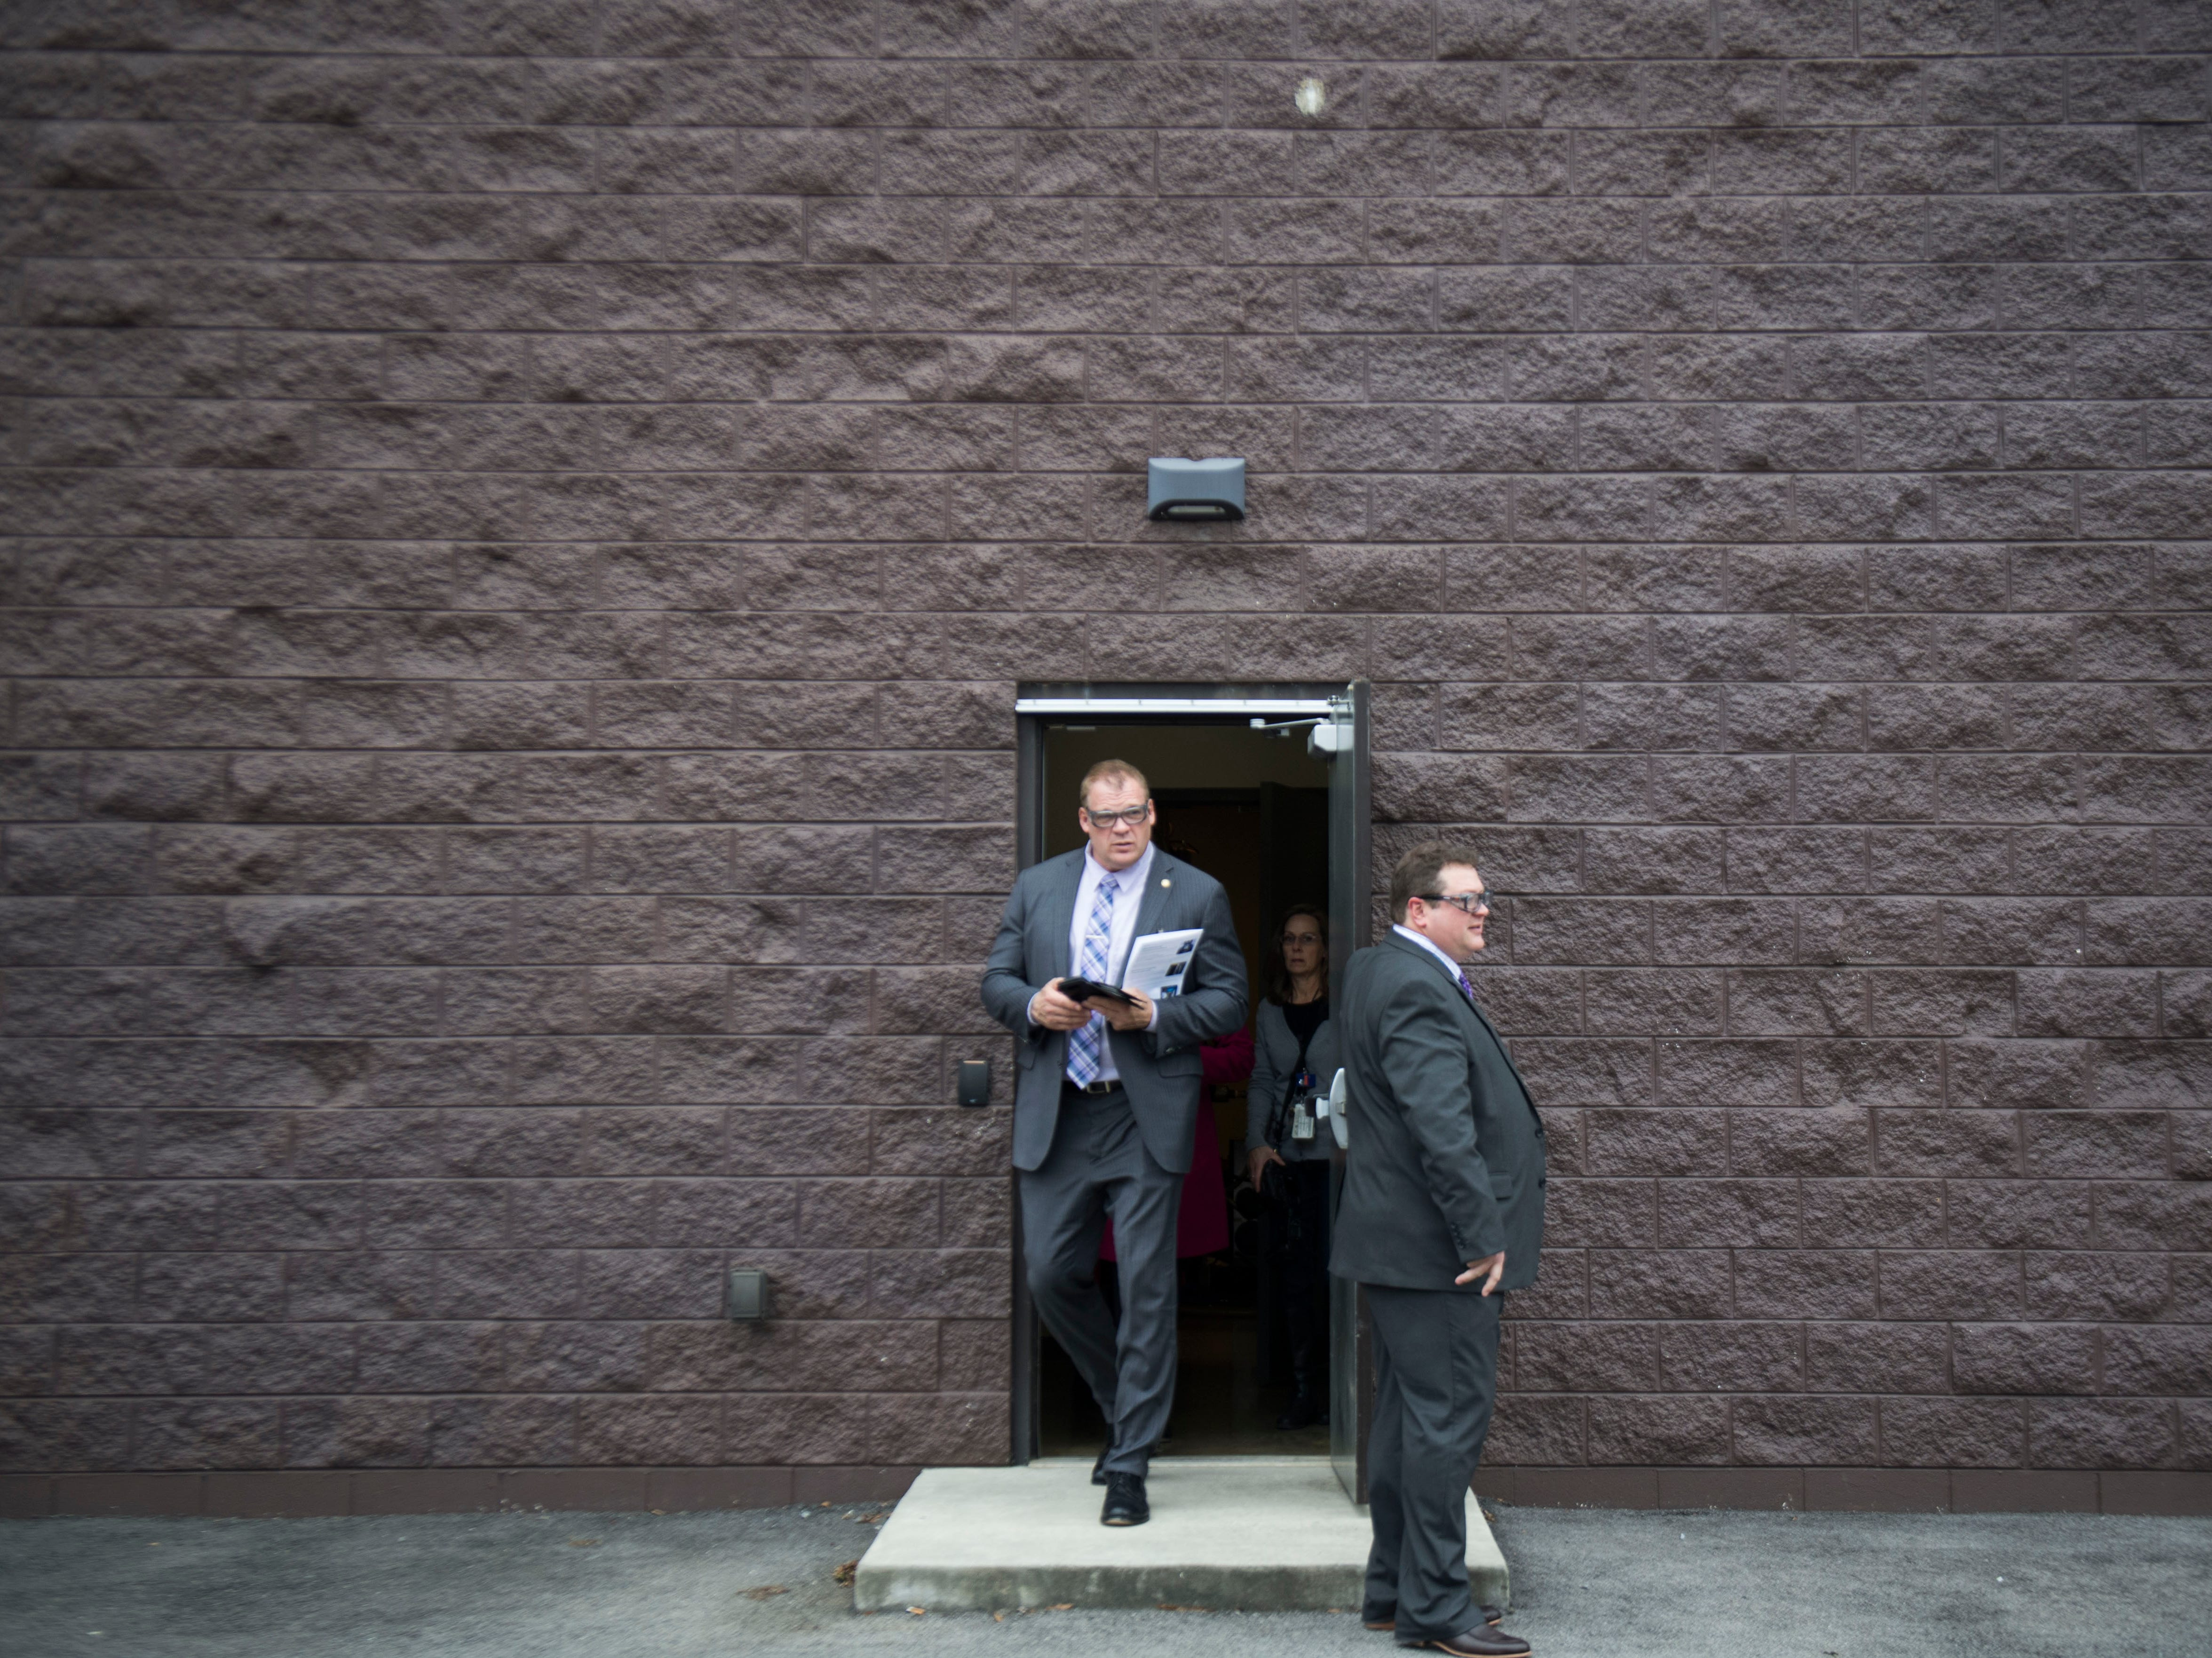 The Knox County Mayor Glenn Jacobs walks out of a building during a tour of Oak Ridge National Laboratory's Manufacturing Demonstration Facility in Knoxville Tuesday, Dec. 4, 2018.